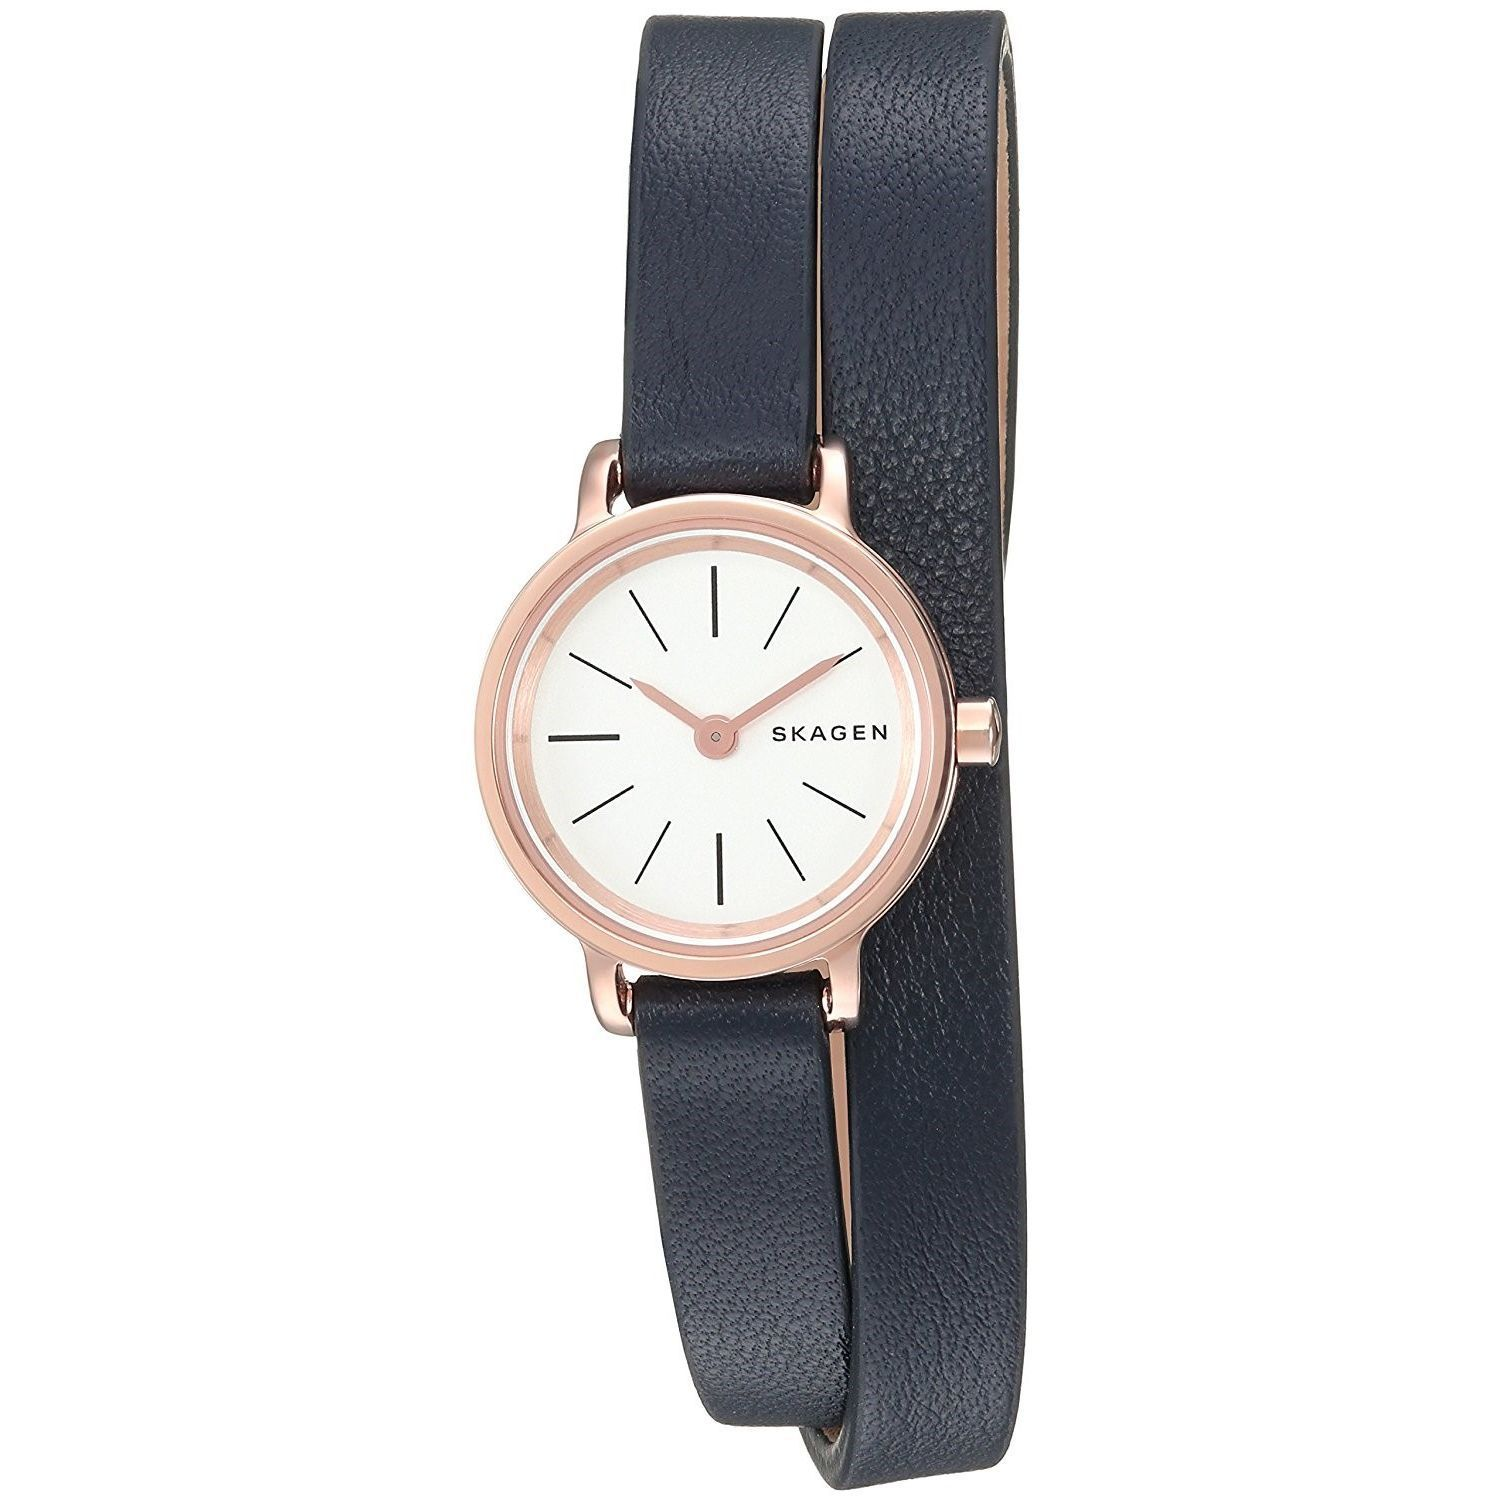 inflowcomponent p skagen hagen item ebay content watch s inflow watches global no technicalissues leather ladies res